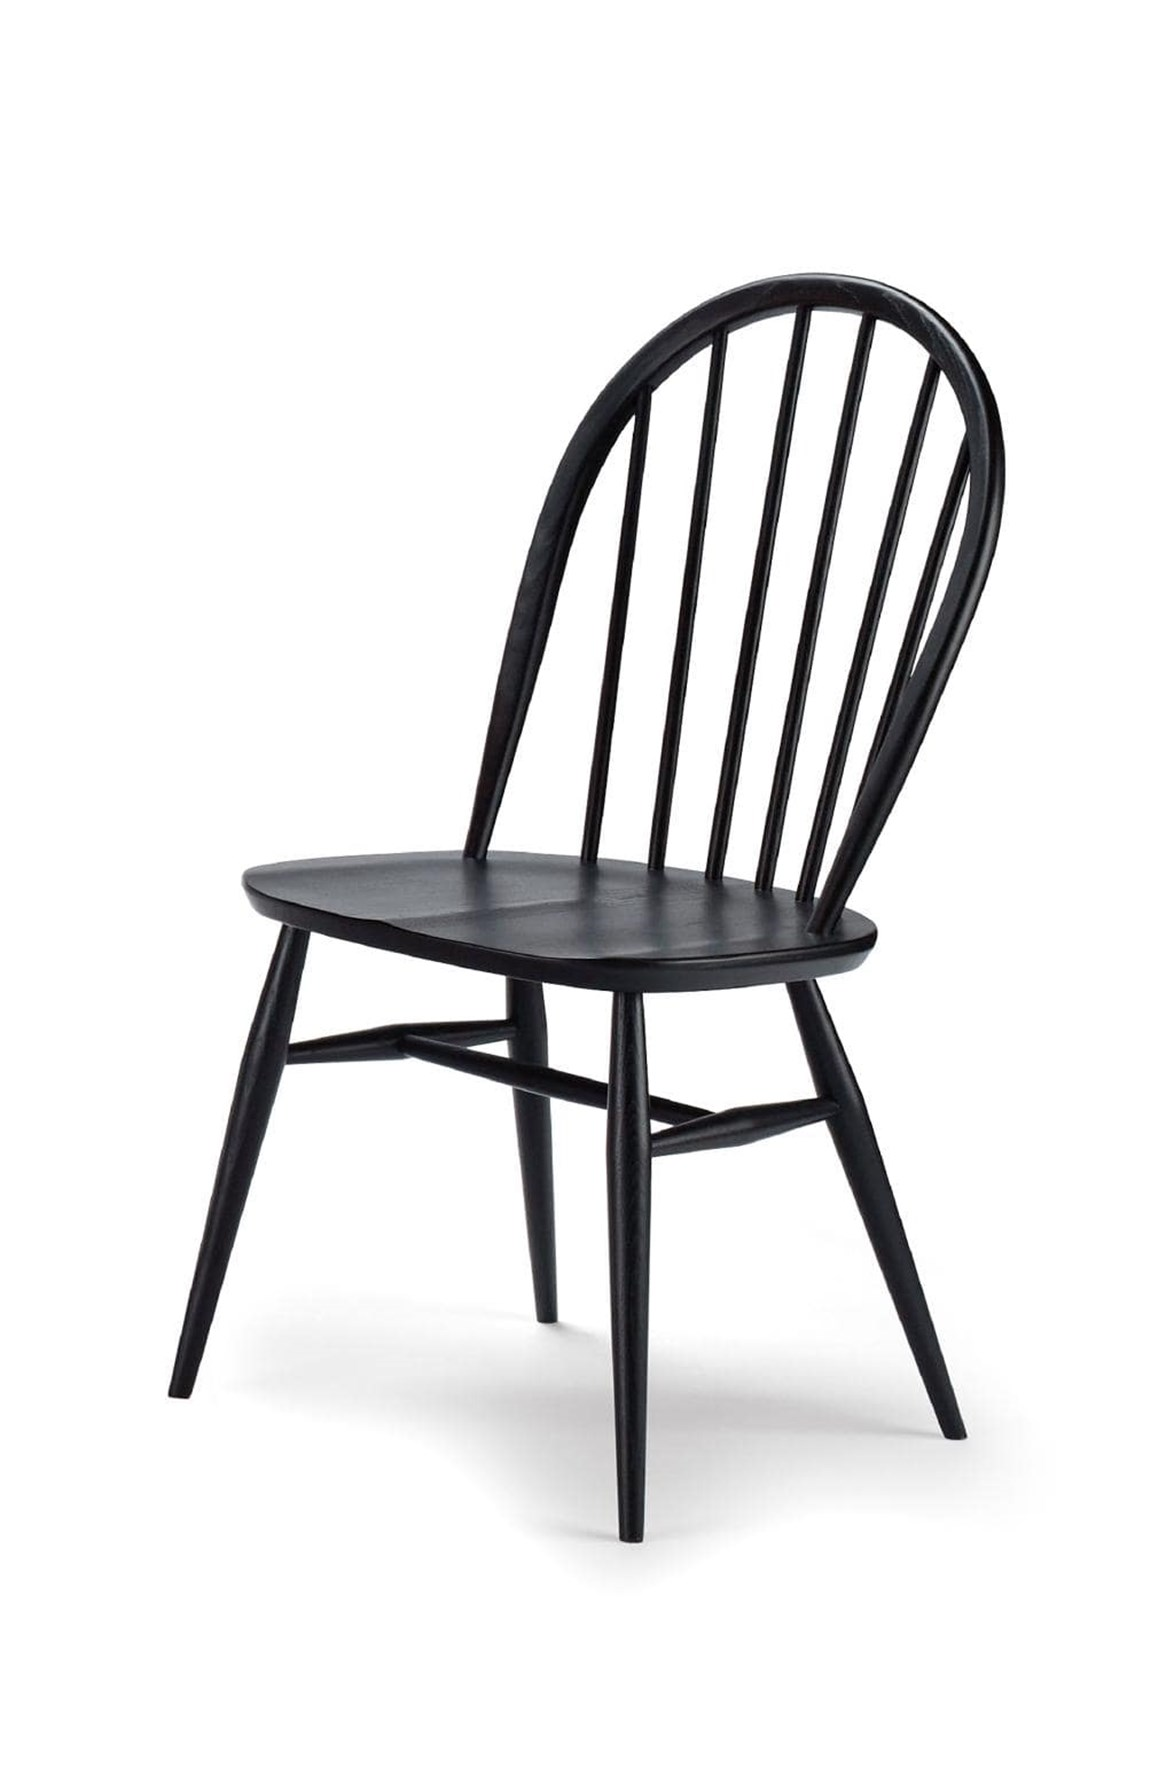 "Ercol 'Originals Windsor' dining chair, $795, [Temperature Design](https://furniture.temperaturedesign.com.au/collections/chairs/products/ercol-windsor-chair?variant=1787923073|target=""_blank""